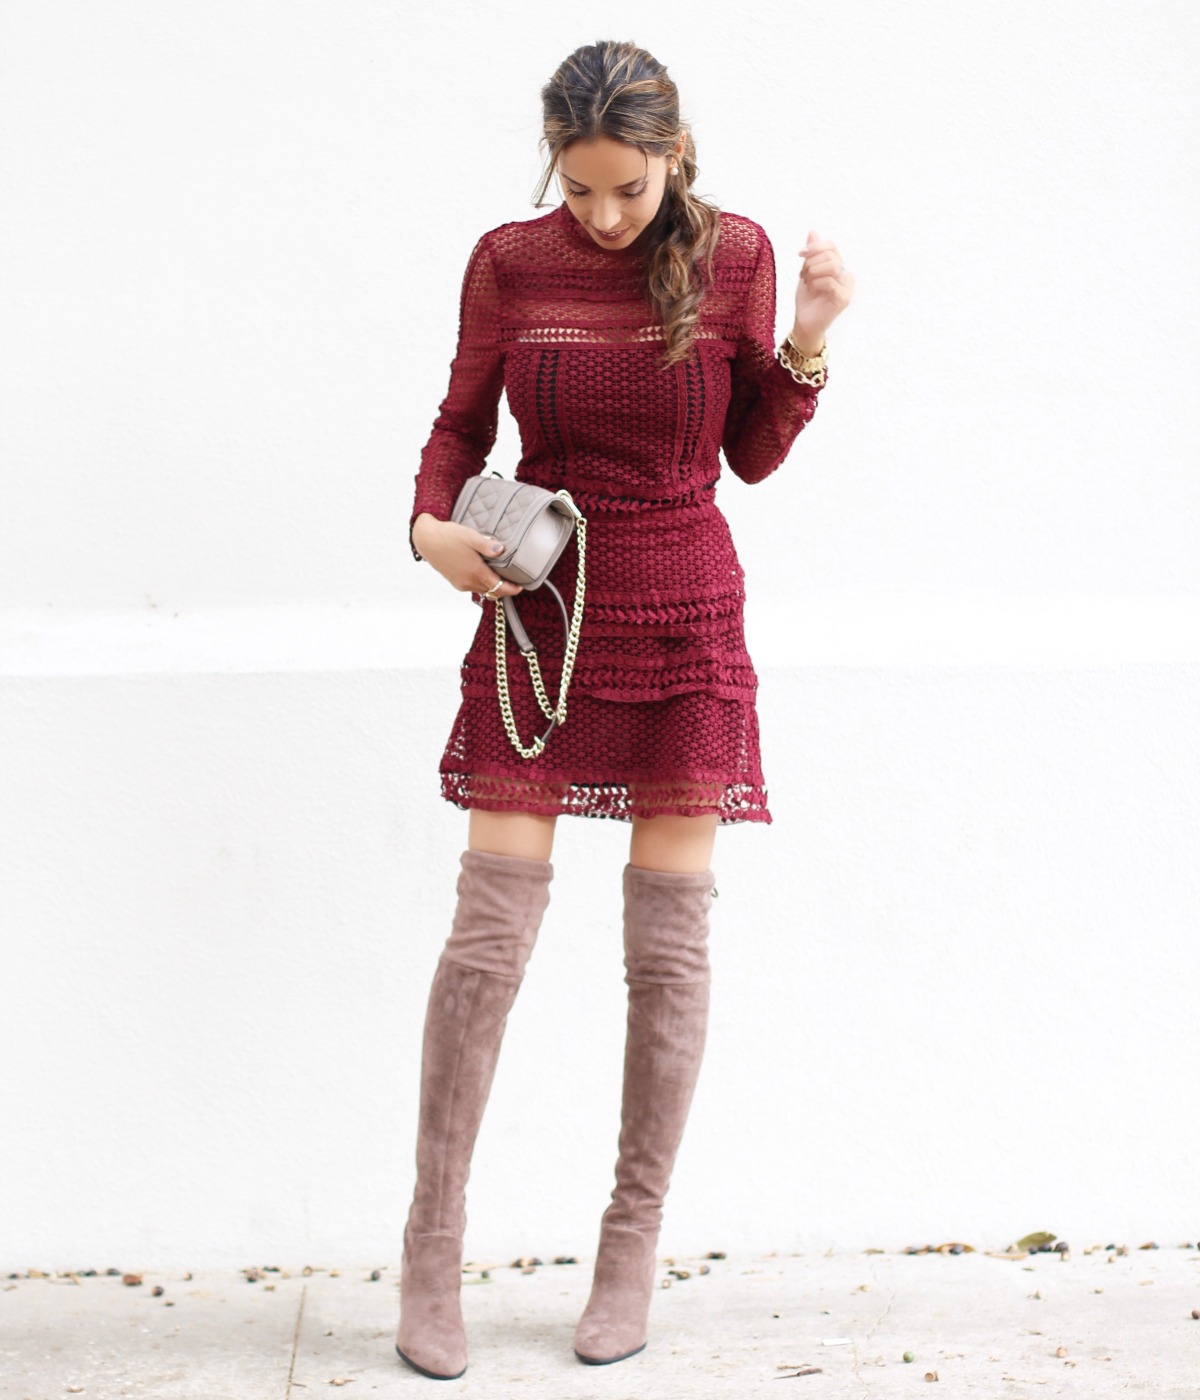 Burgundy lace dress and thigh high boots